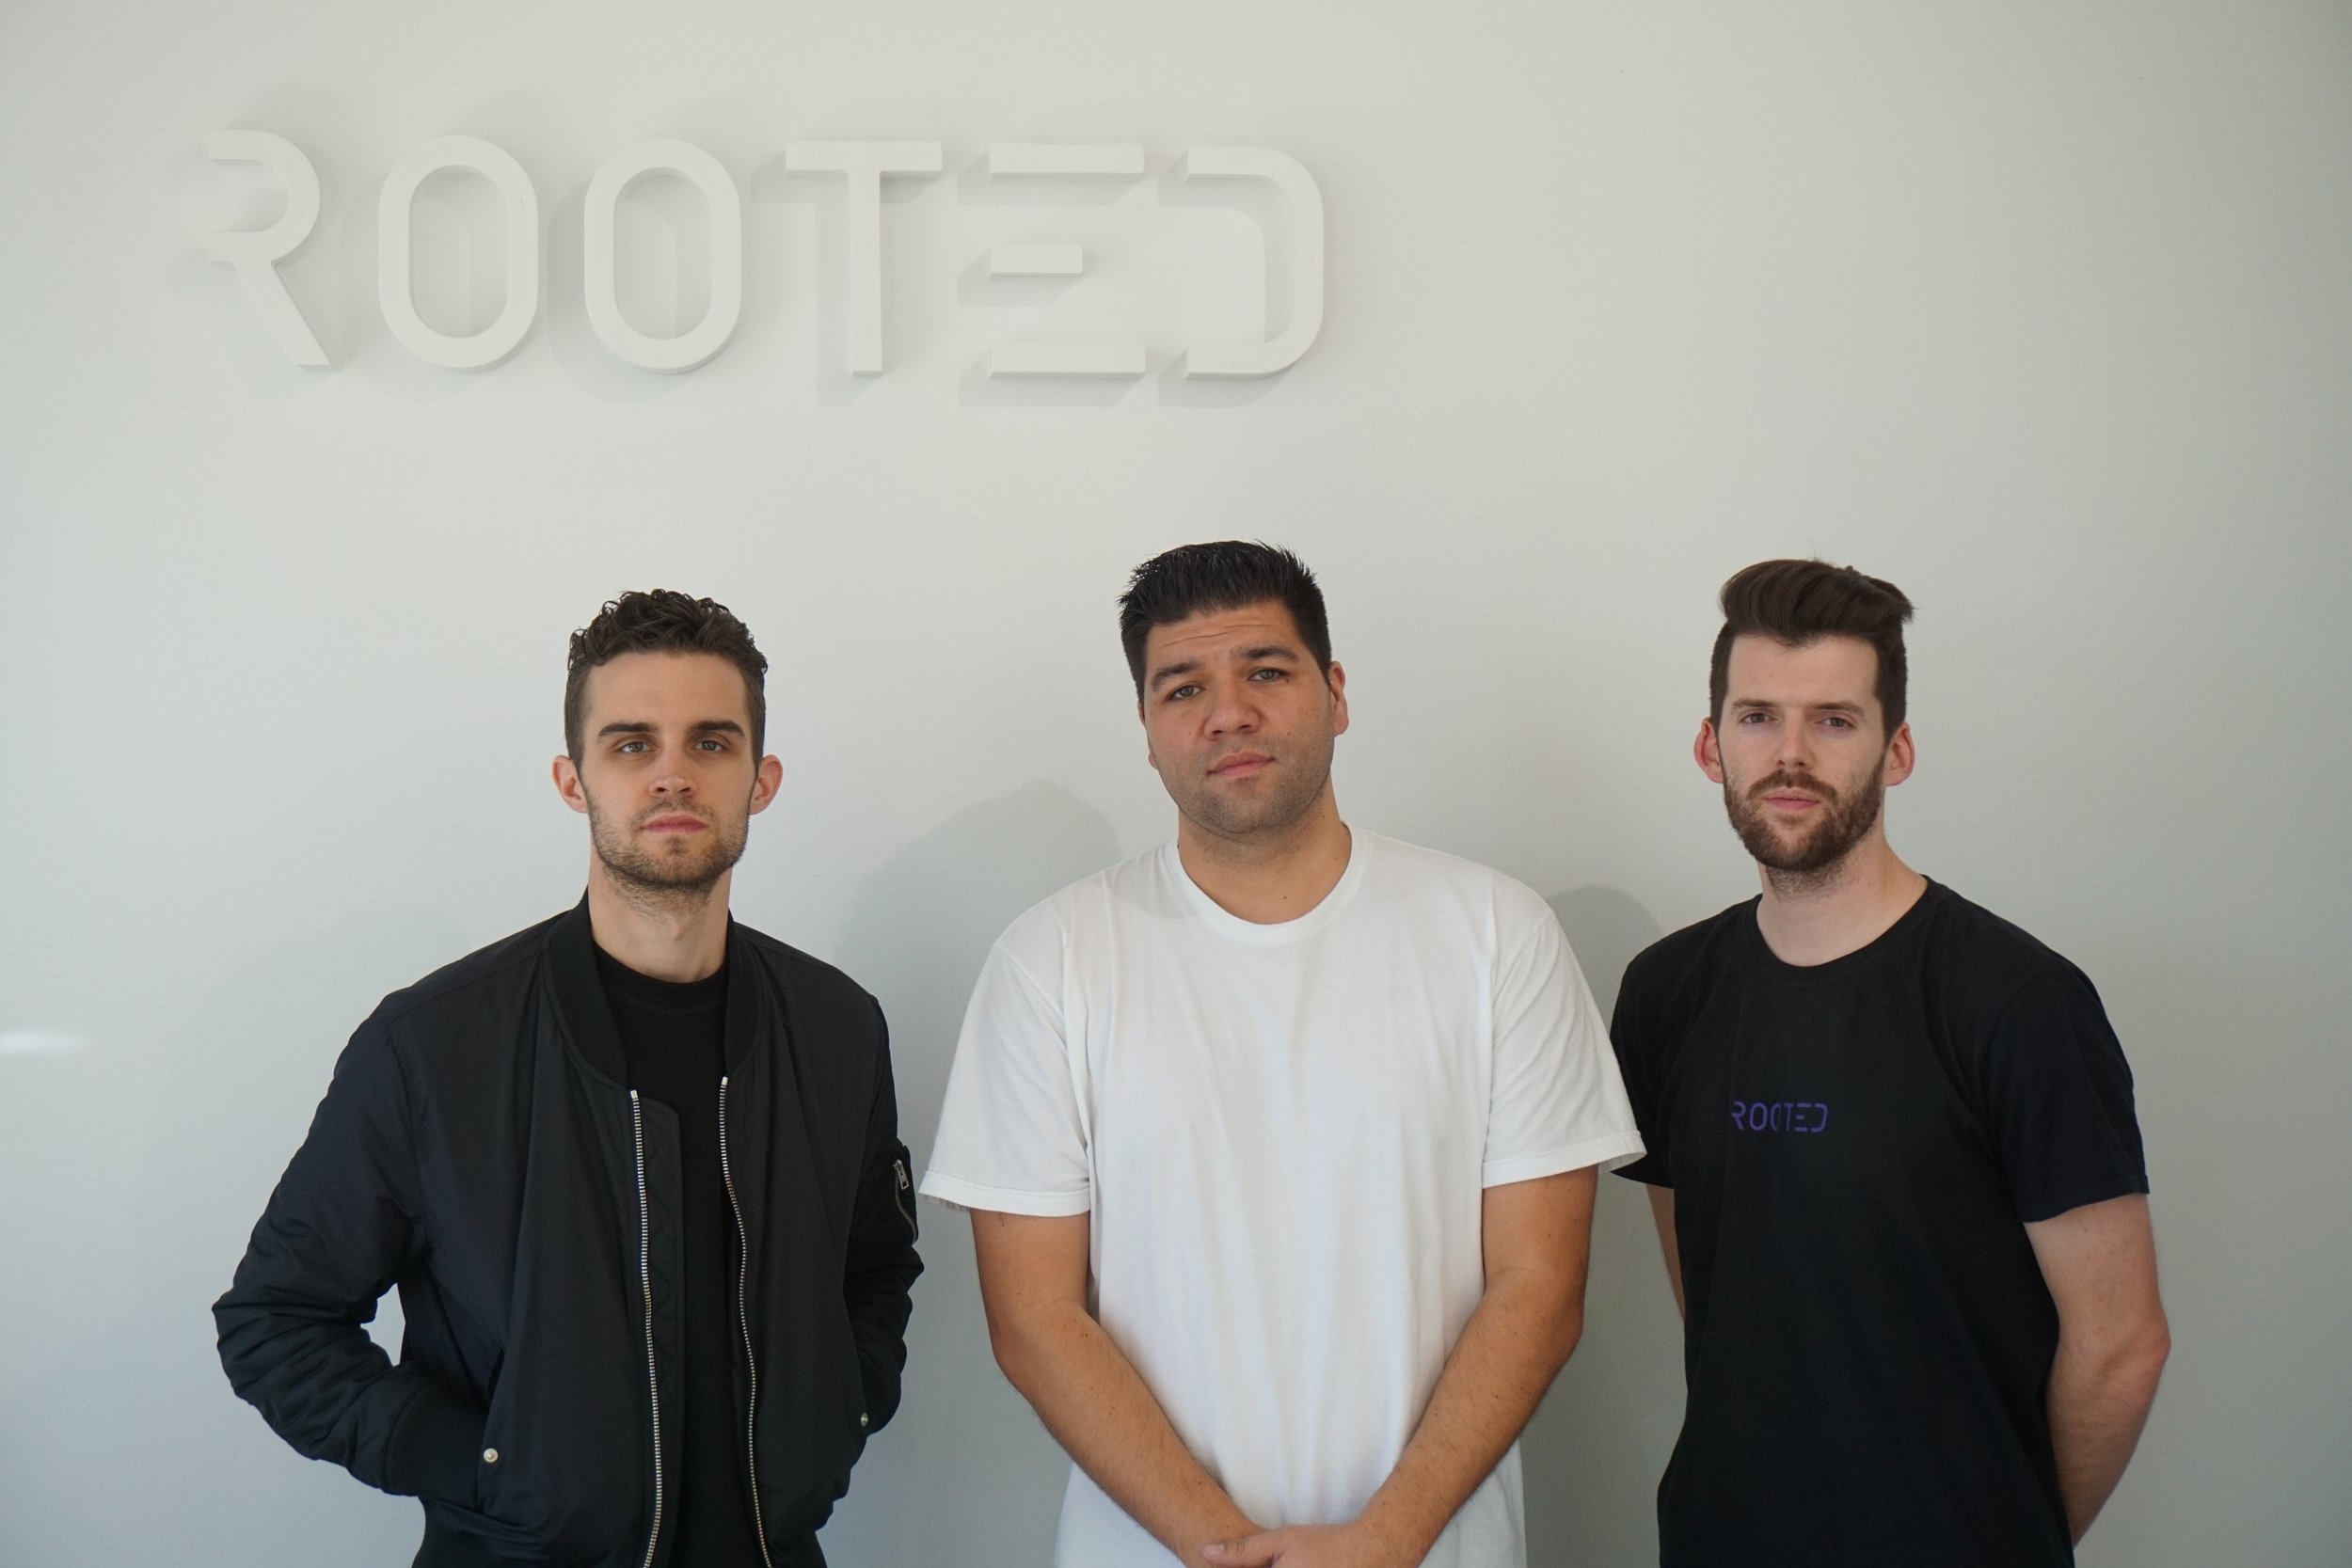 Rooted (Aaron Morrison, Jaime Bacalan, and Alexander McMeen)  - [On Nashville's expanding sartorial tastes]  …there's segmentation of groups in every city, and that's what we offer in Nashville, is the proof that there is a desire for much more than [western wear] in Nashville. Once people from the brands and people that aren't from here visit, they get more of a taste for it, and understand what we're doing, and better understand the culture here, and where we fit within that culture. And brands have been wanting to work with us more because of that.